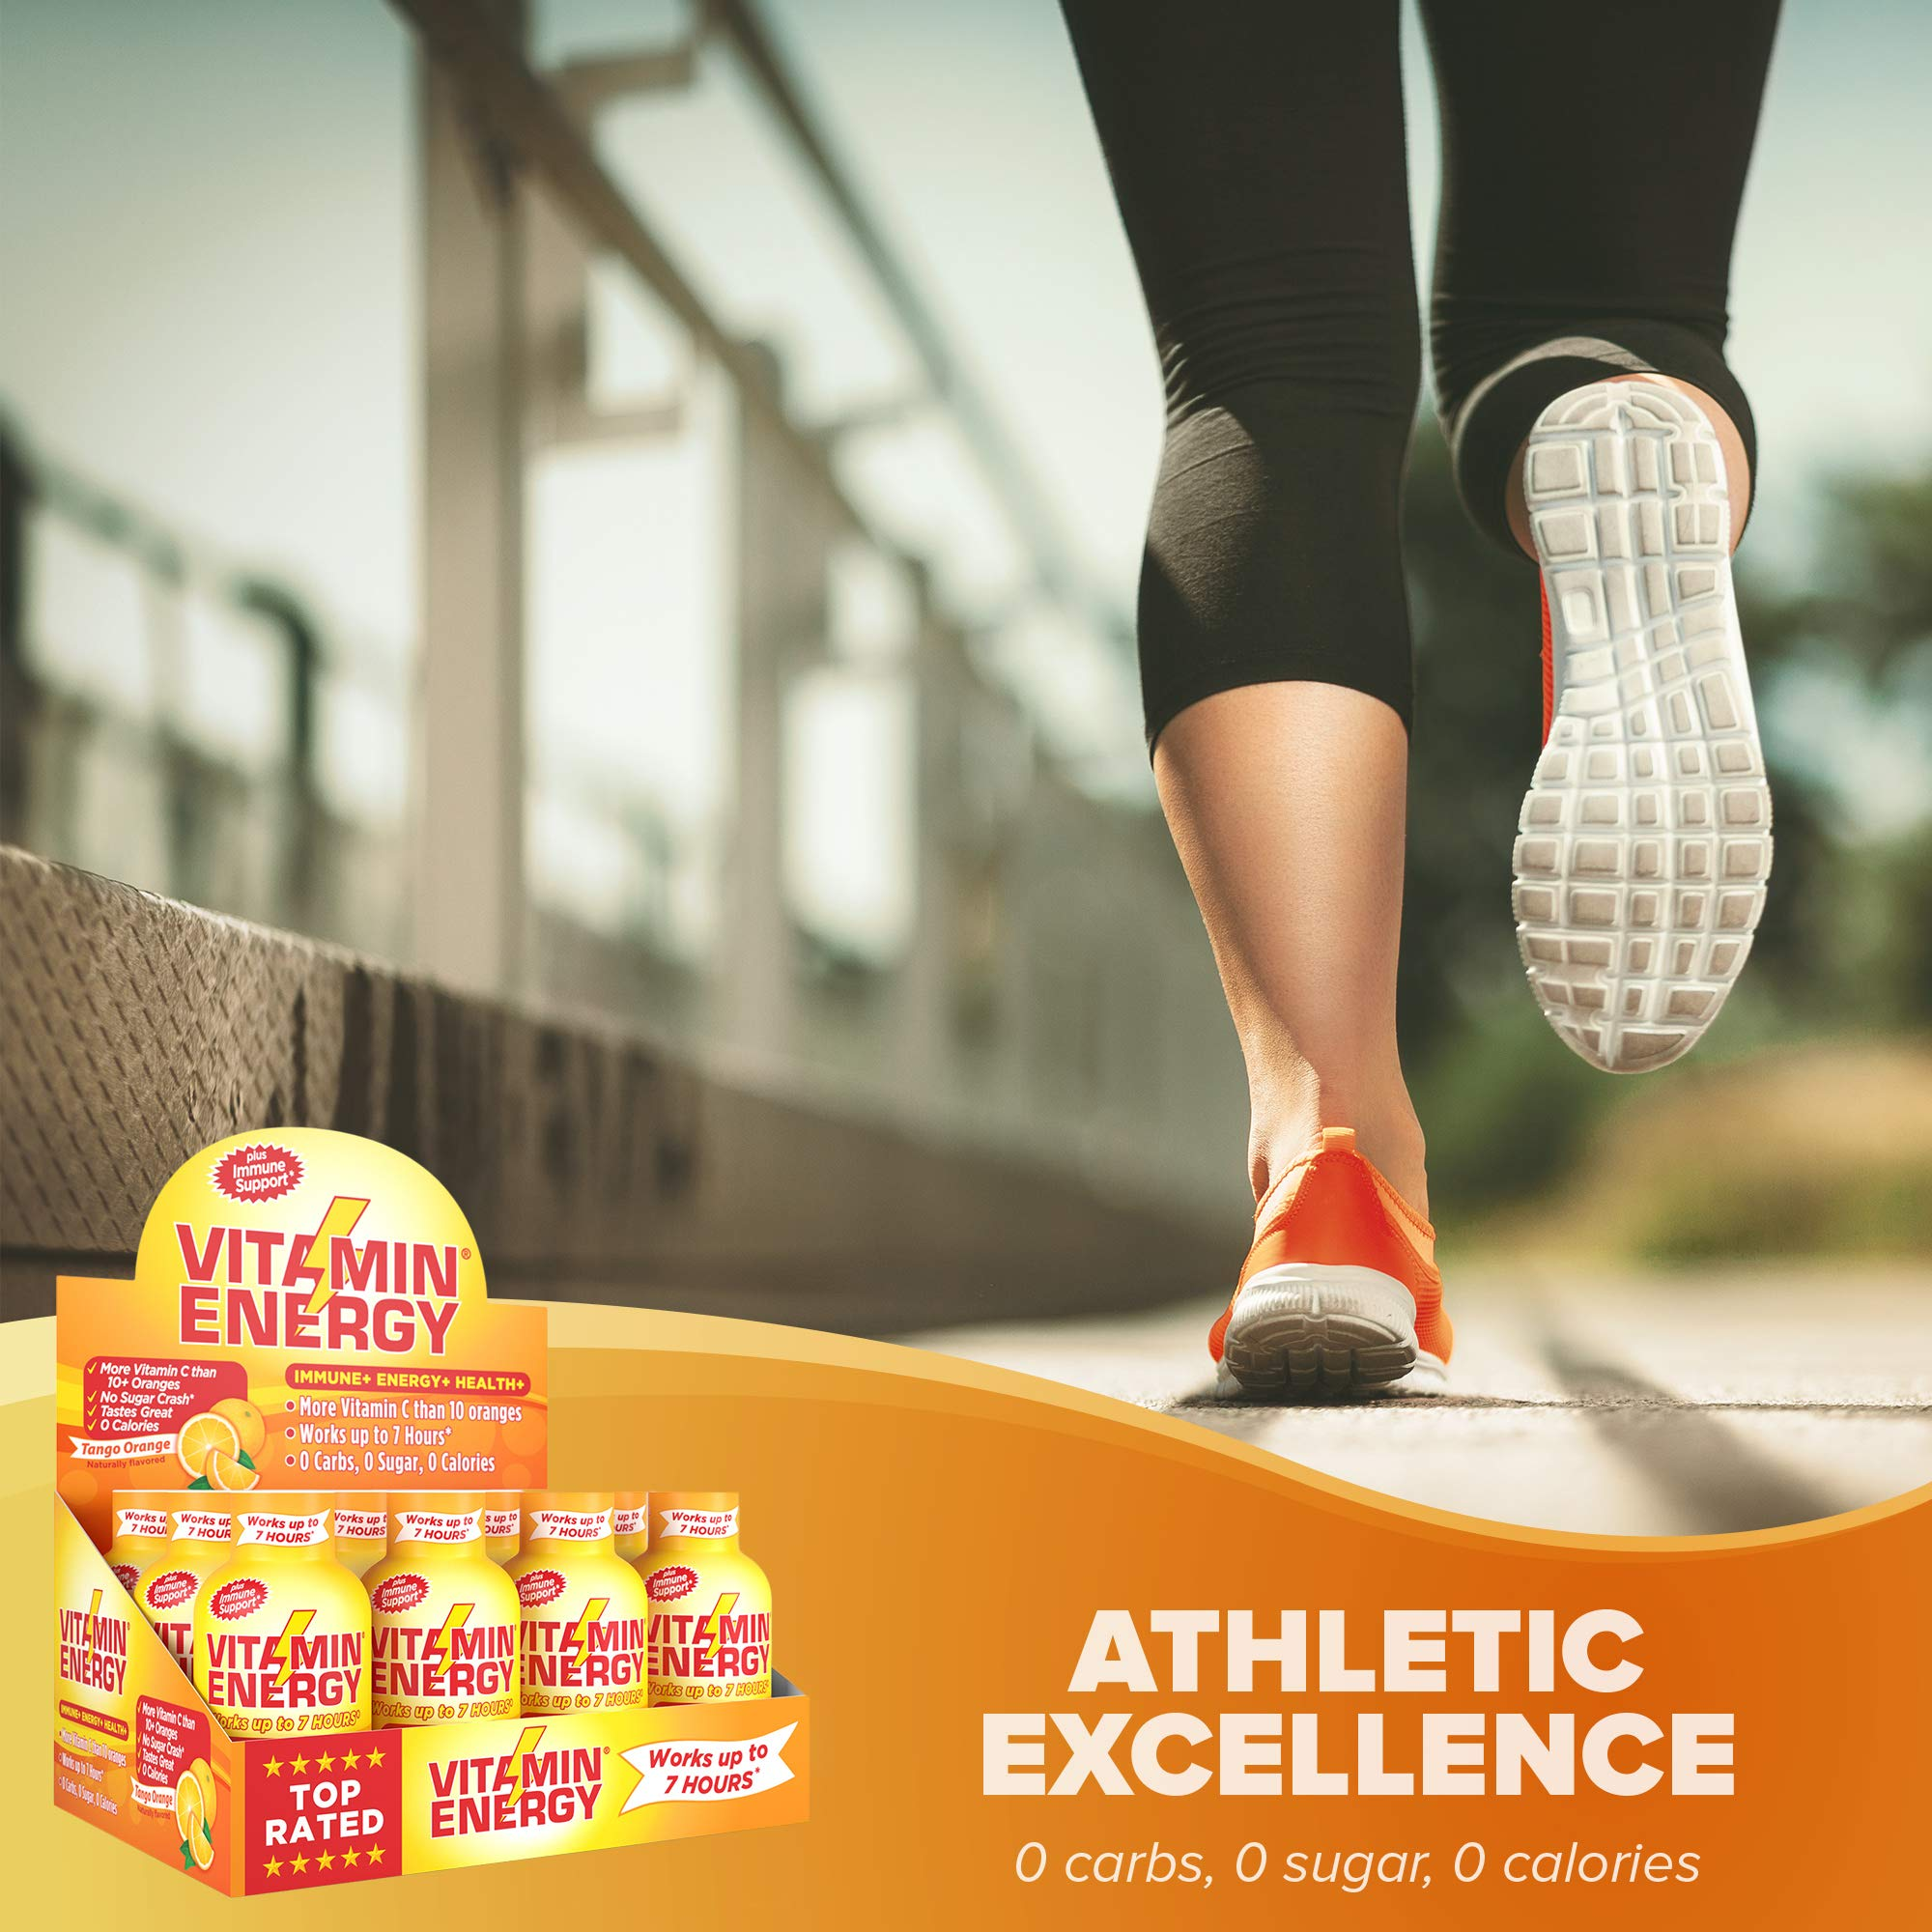 Vitamin Energy Shots – up to 7 Hours of Energy, More Vitamin C Than 10 Oranges, 0 Calories (48 Count) by Vitamin Energy (Image #4)